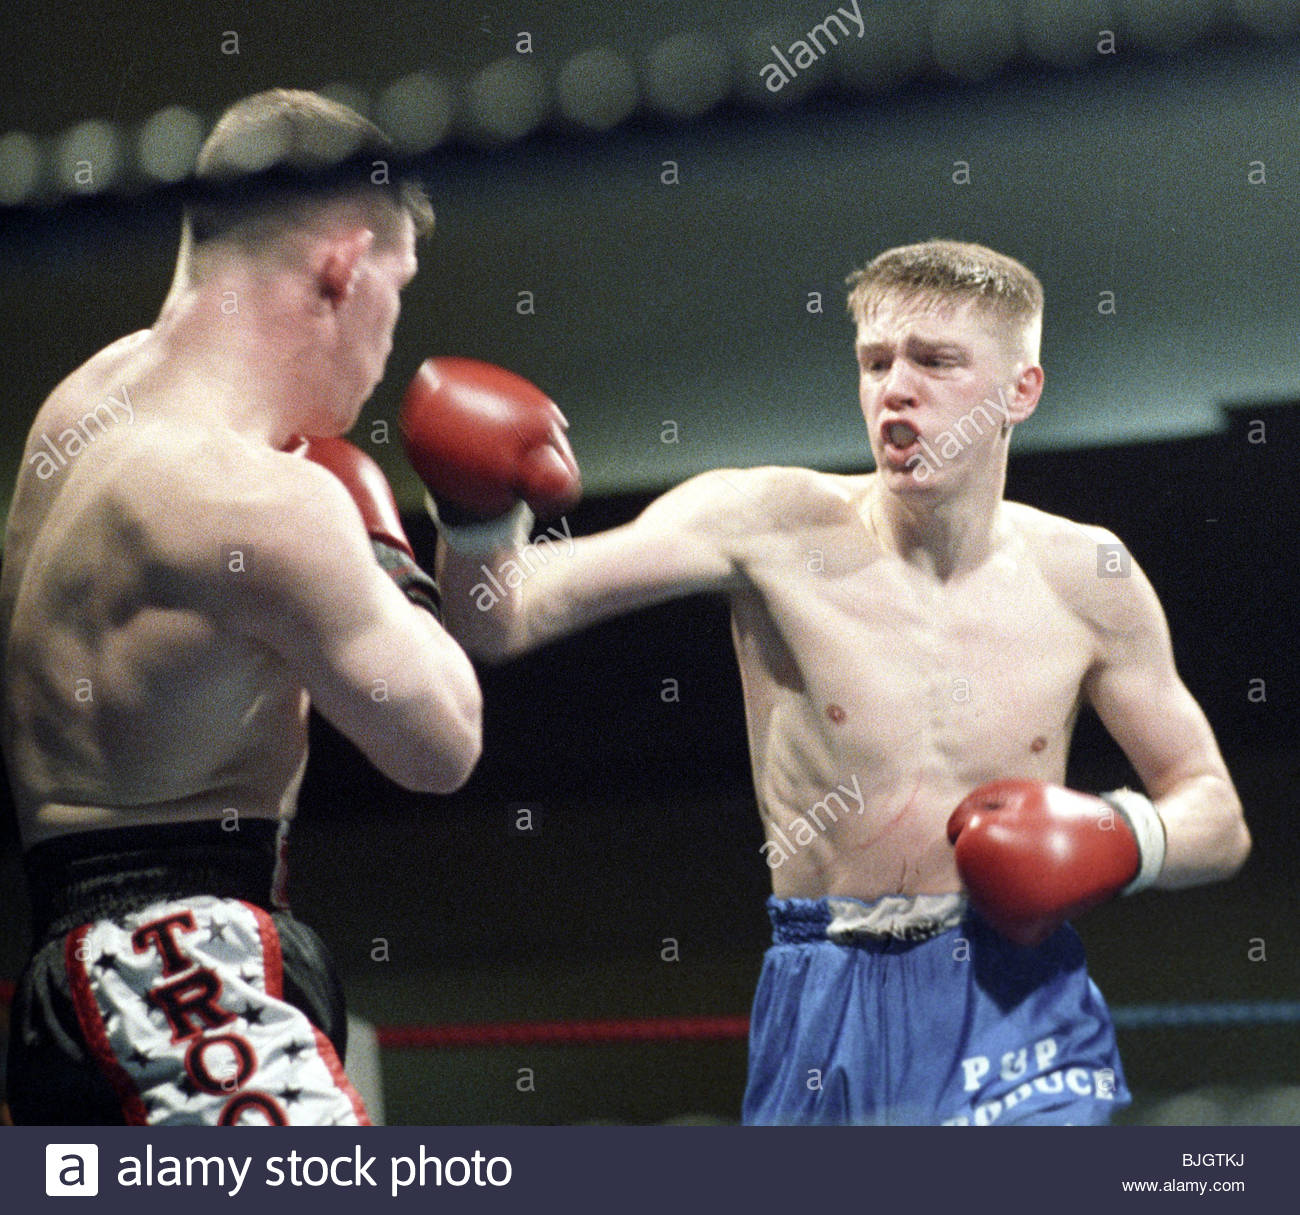 31/01/92 LIGHTWEIGHT CONTEST ALAN MCDOWAL V CHARLES SHEPPARD HOSPITALITY INN - GLASGOW Alan McDowall (right) in - Stock Image